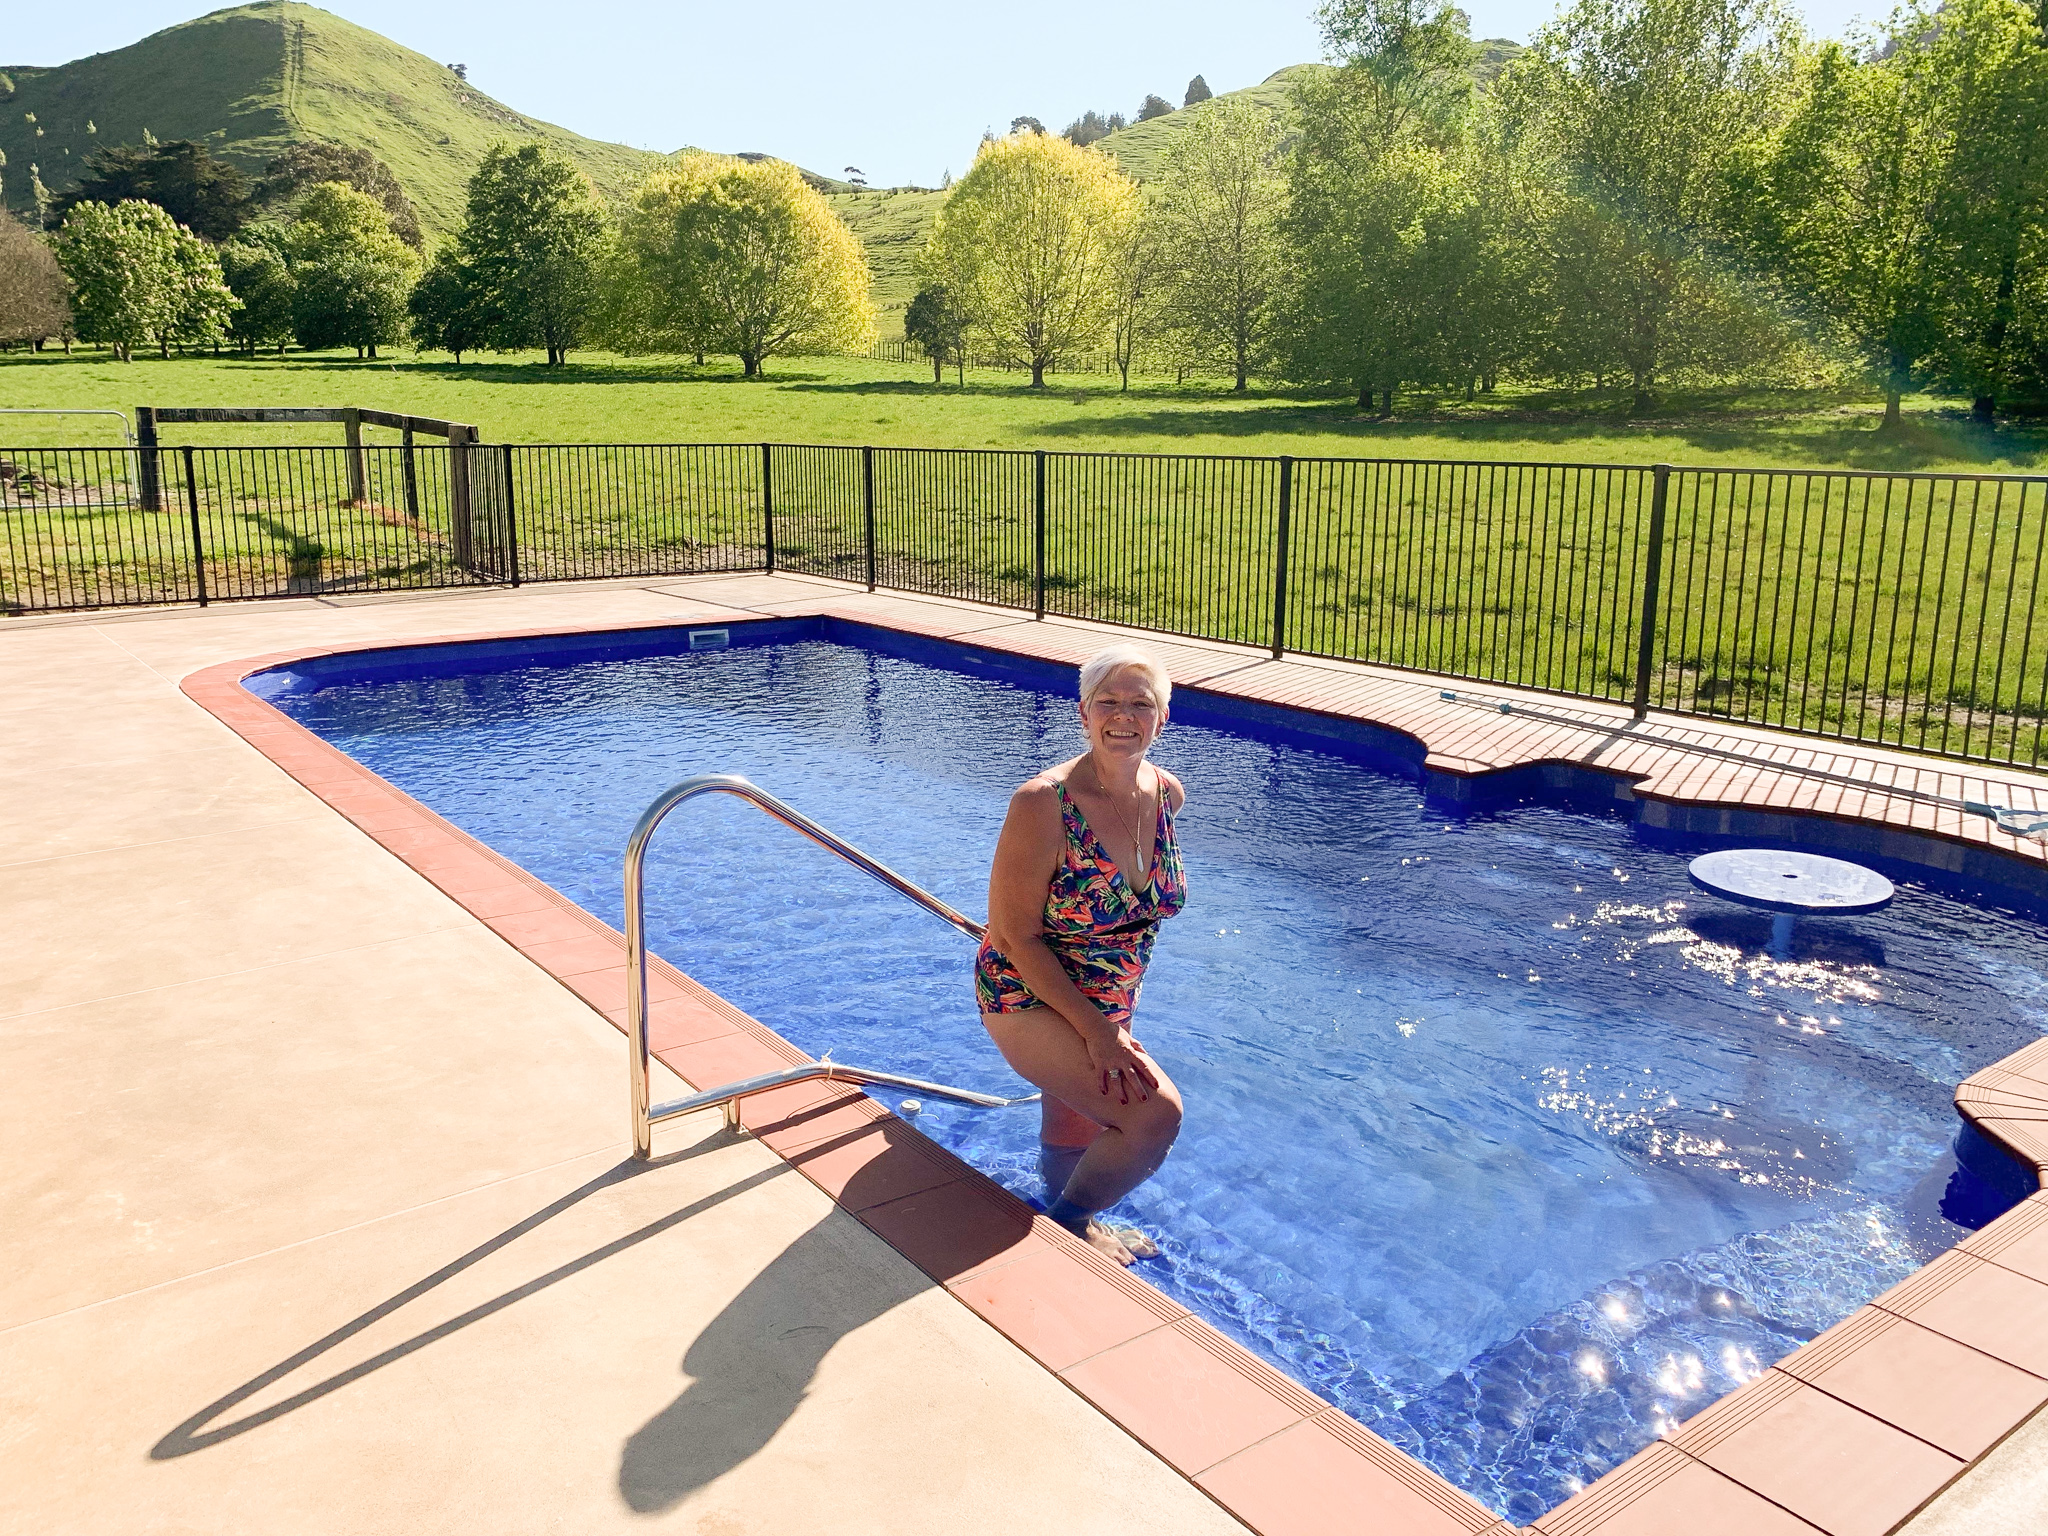 Pools Spa Pools Swimspas wanganui